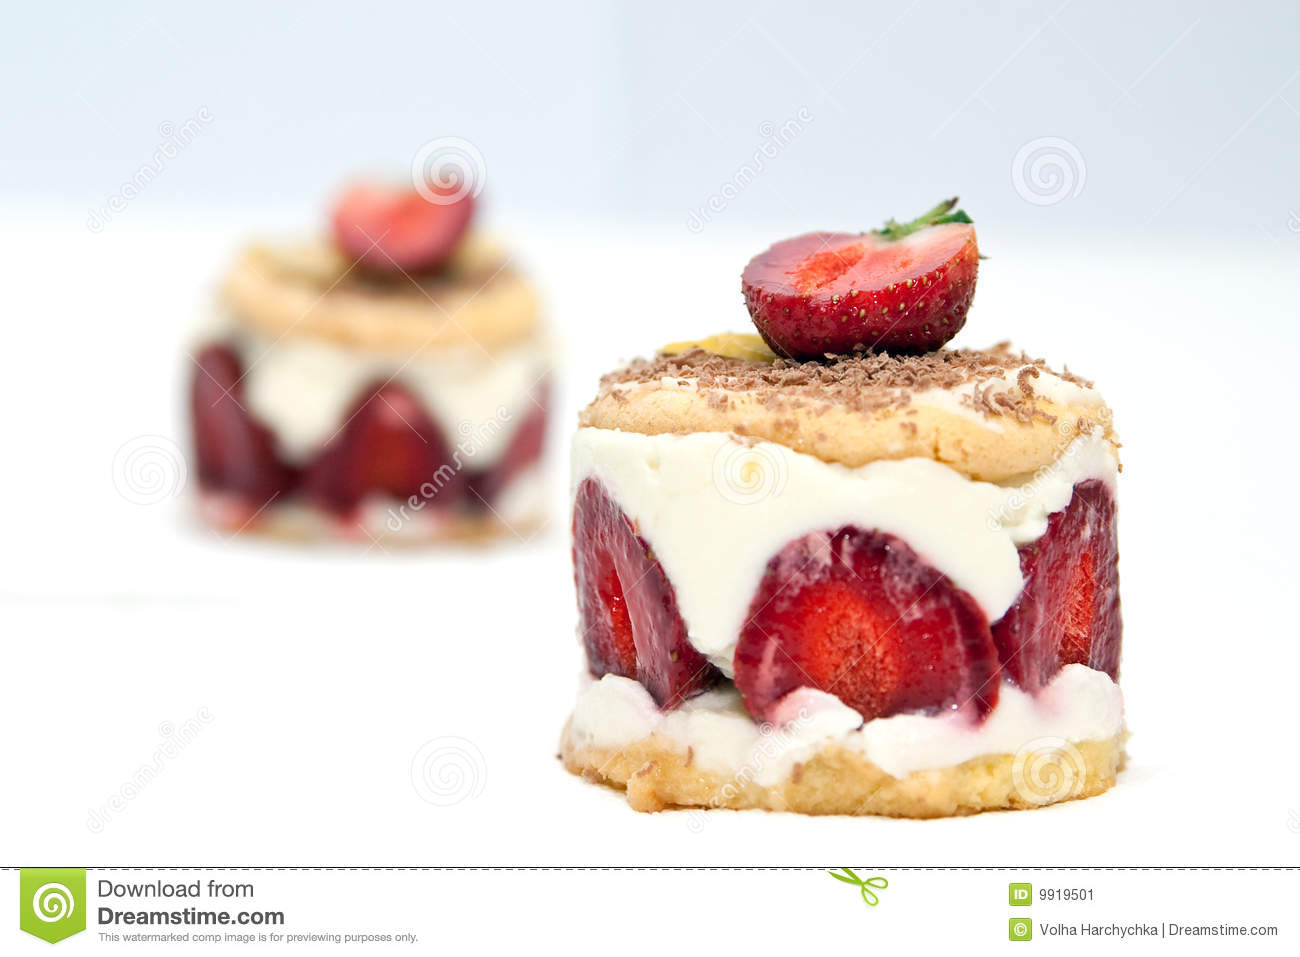 Strawberry Cheesecake With Mascarpone Cream Stock Image - Image ...